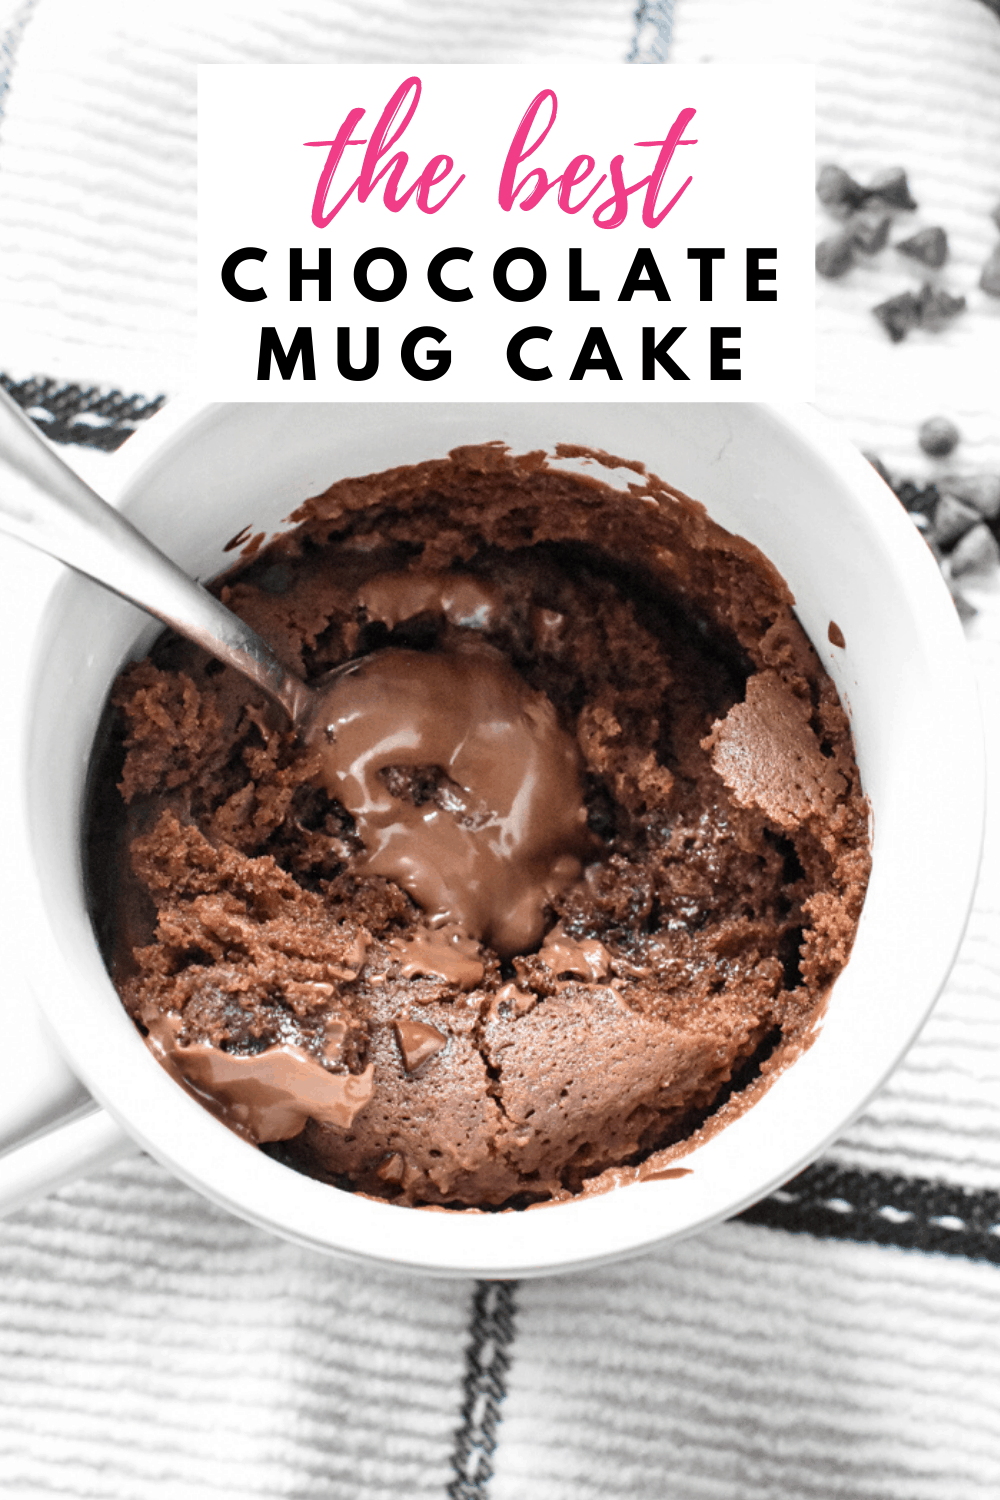 The Best Chocolate Mug Cake | Recipe in 2020 | Microwave ...